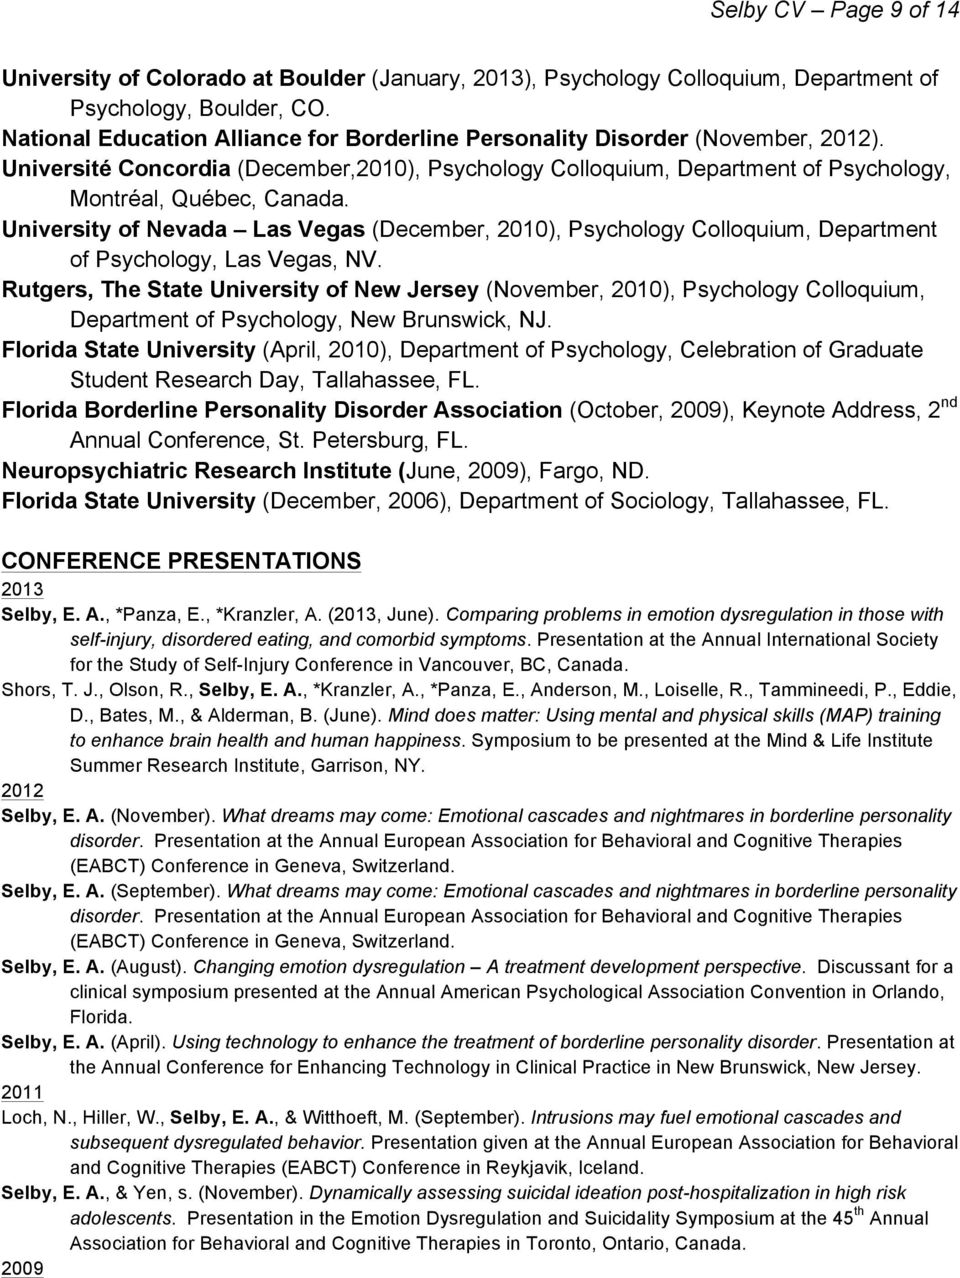 University of Nevada Las Vegas (December, 2010), Psychology Colloquium, Department of Psychology, Las Vegas, NV.